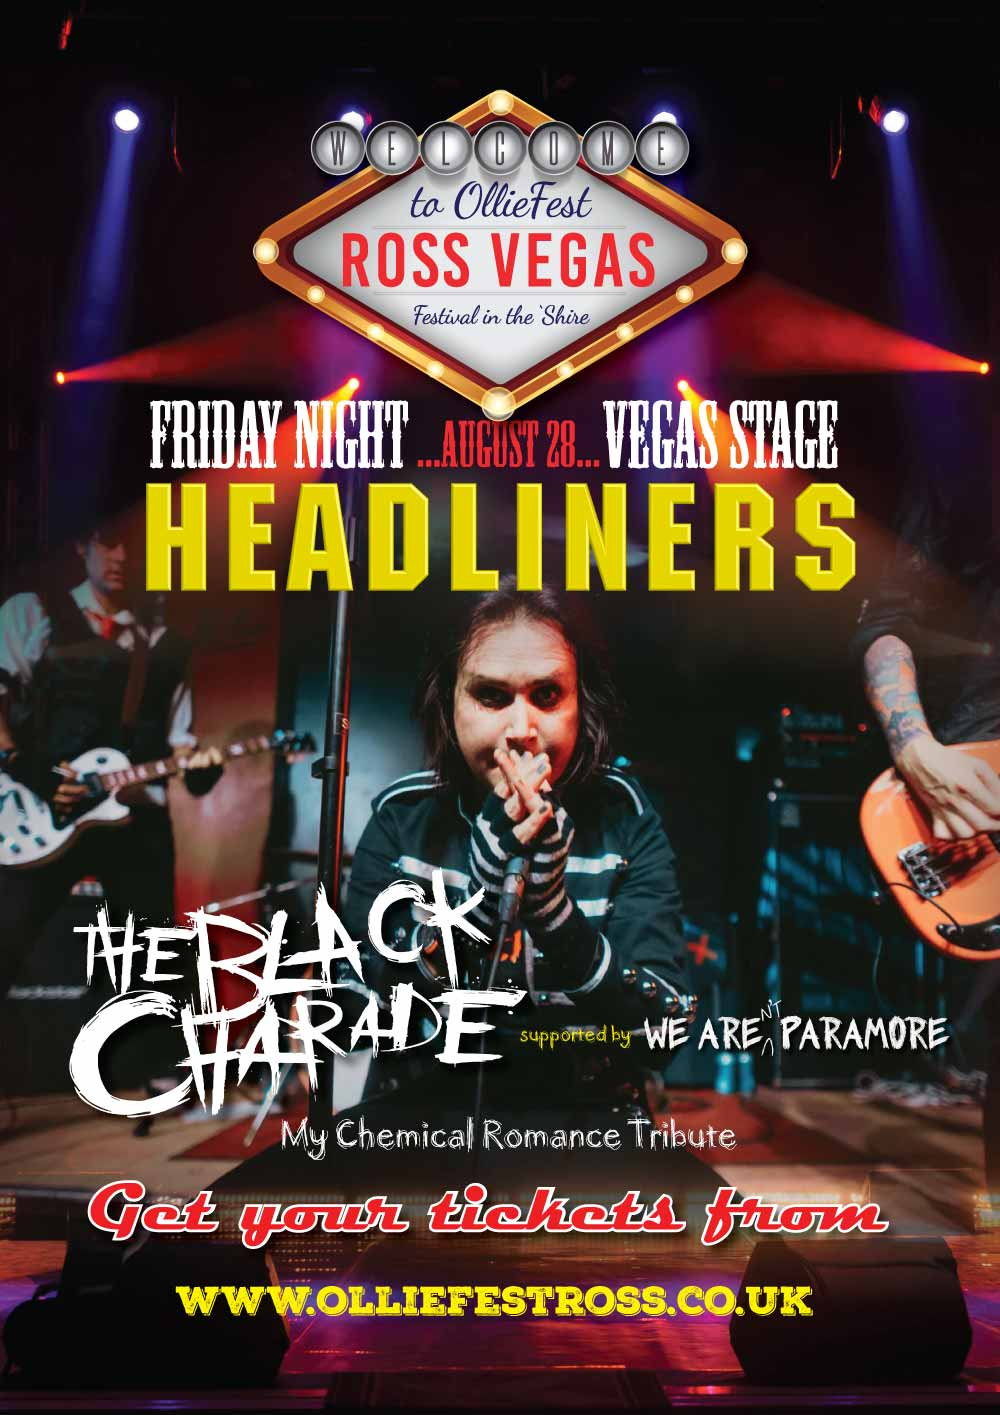 The Black Charade Headlining the Vegas Stage at OllieFest on Friday August 28th, 2020